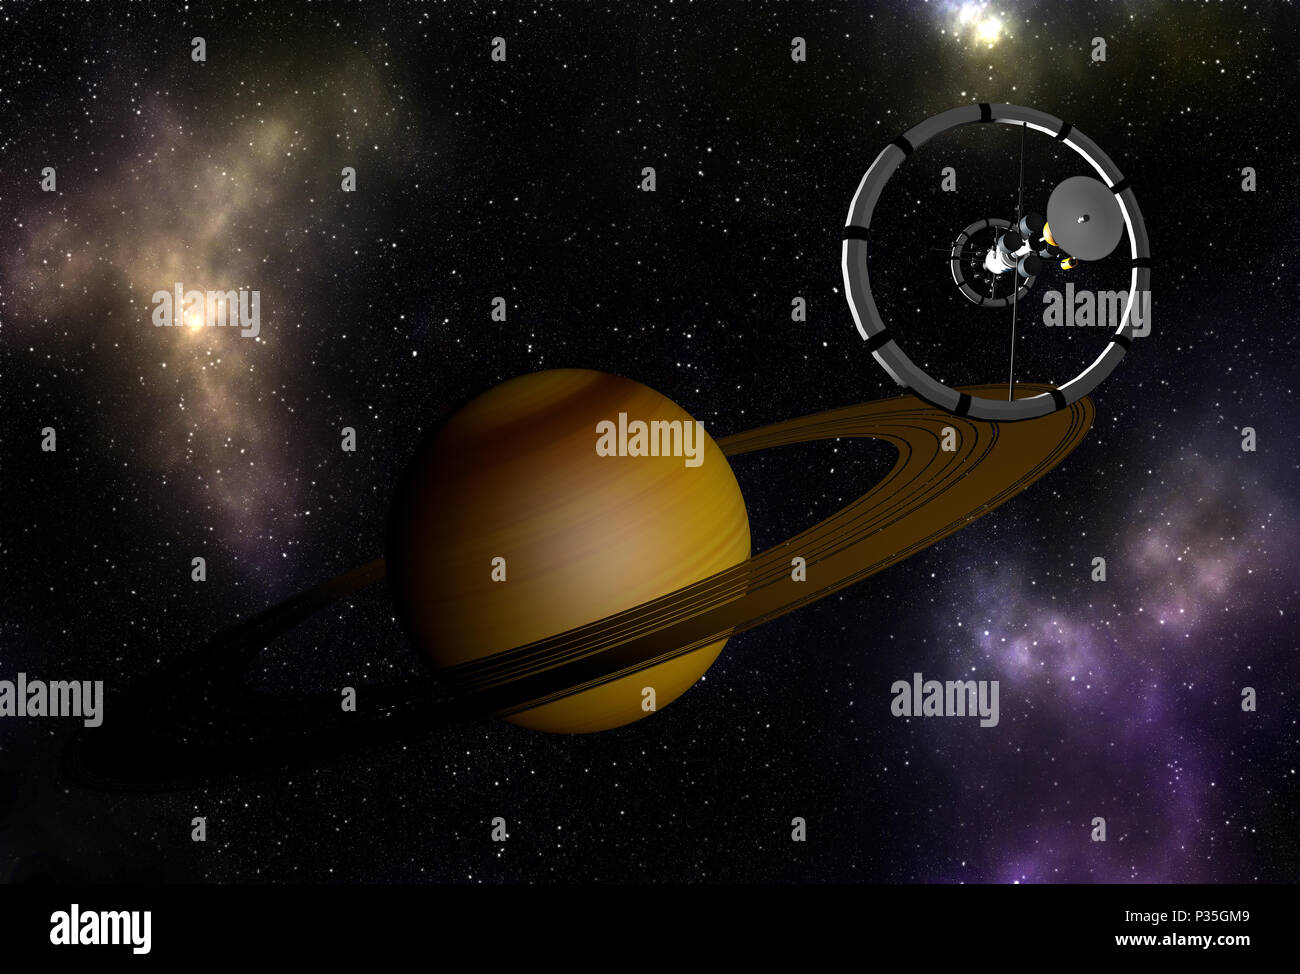 Spacecraft flying to Saturn - Stock Image